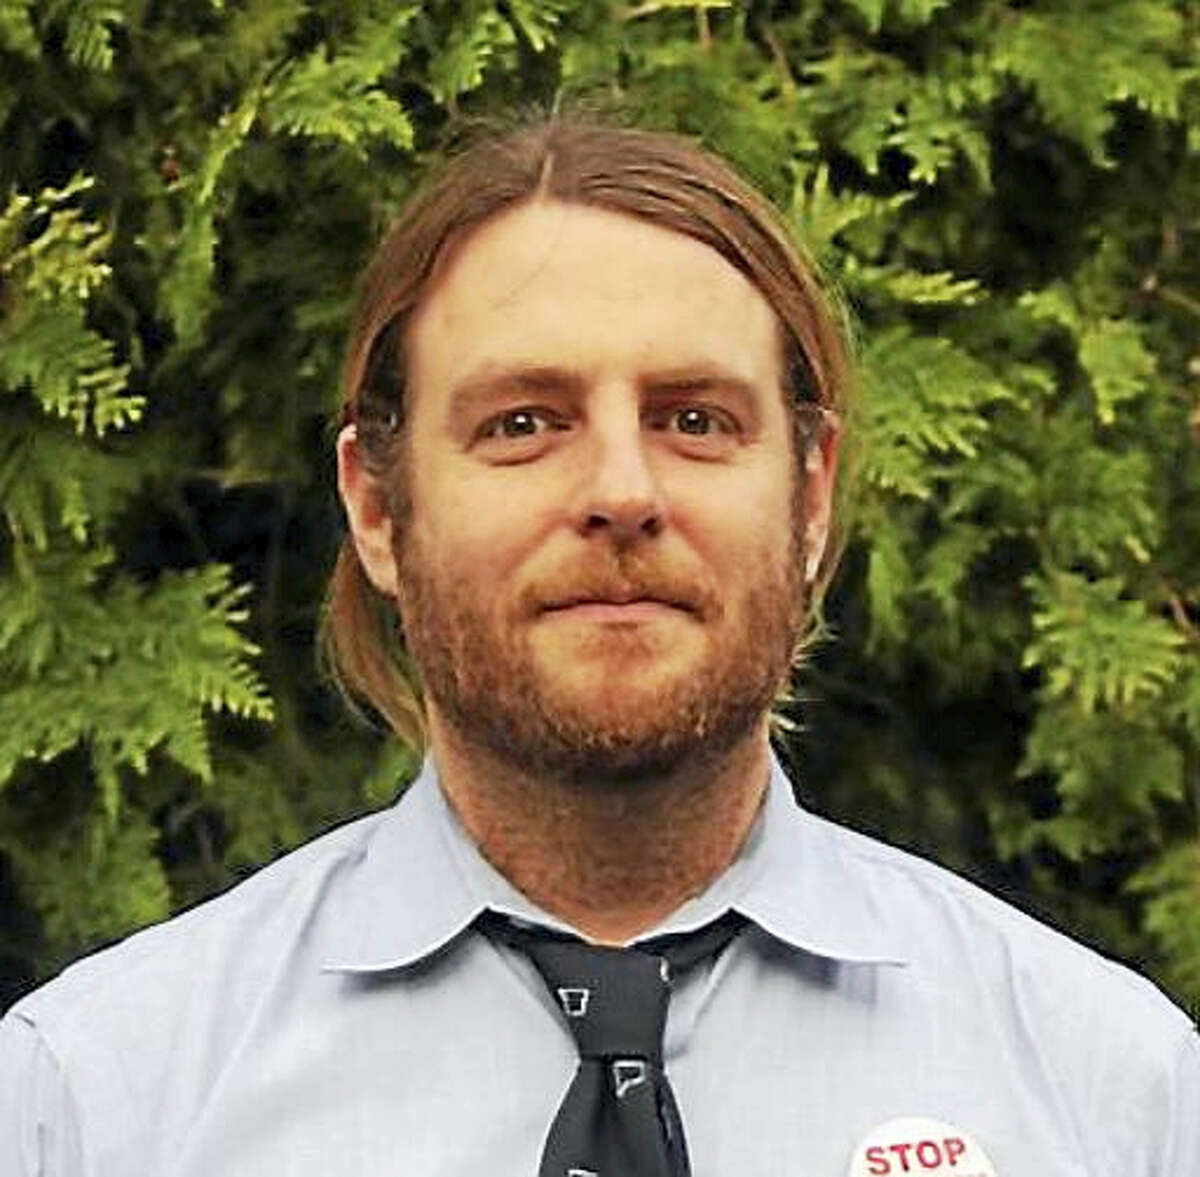 Colin Bennett is the Green Party candidate for the 33rd Senate seat in Connecticut running against Republican incumbent state Sen. Art Linares and Democrat Norm Needleman.